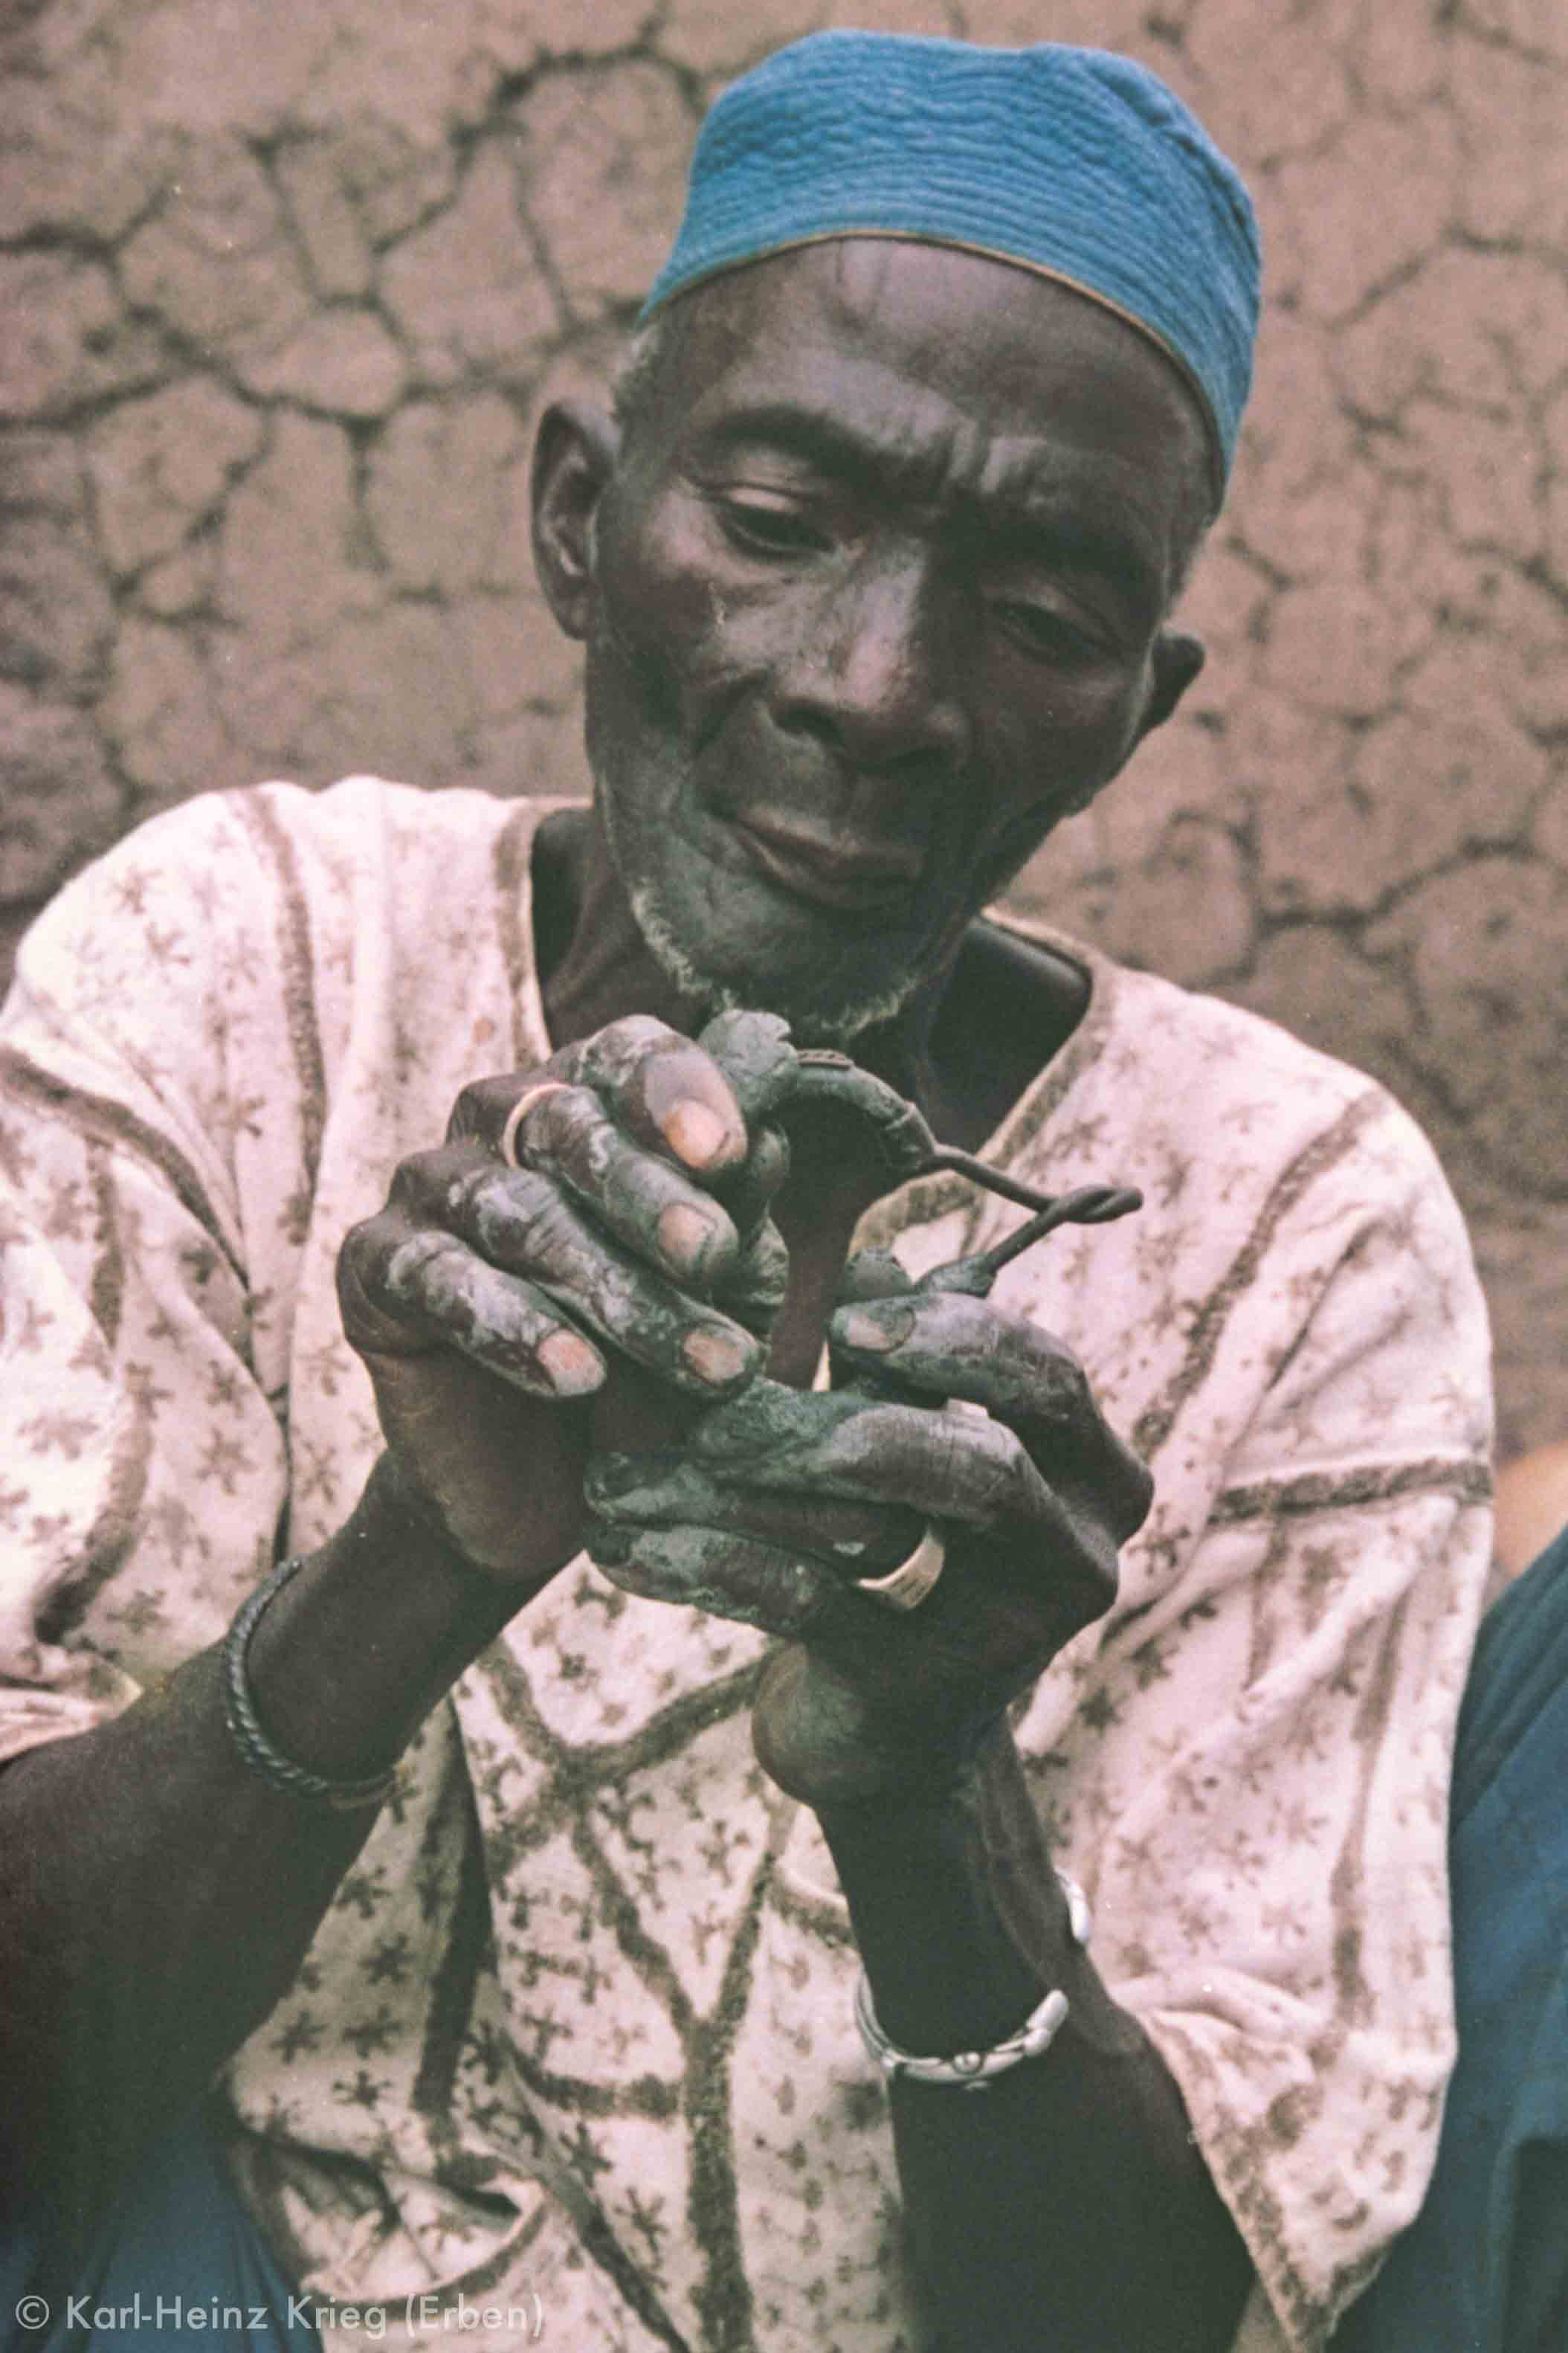 Kolo Silué covering a wax model with clay. Photo: Karl-Heinz Krieg, Nafoun (Region of Boundiali, Côte d'Ivoire), 1977